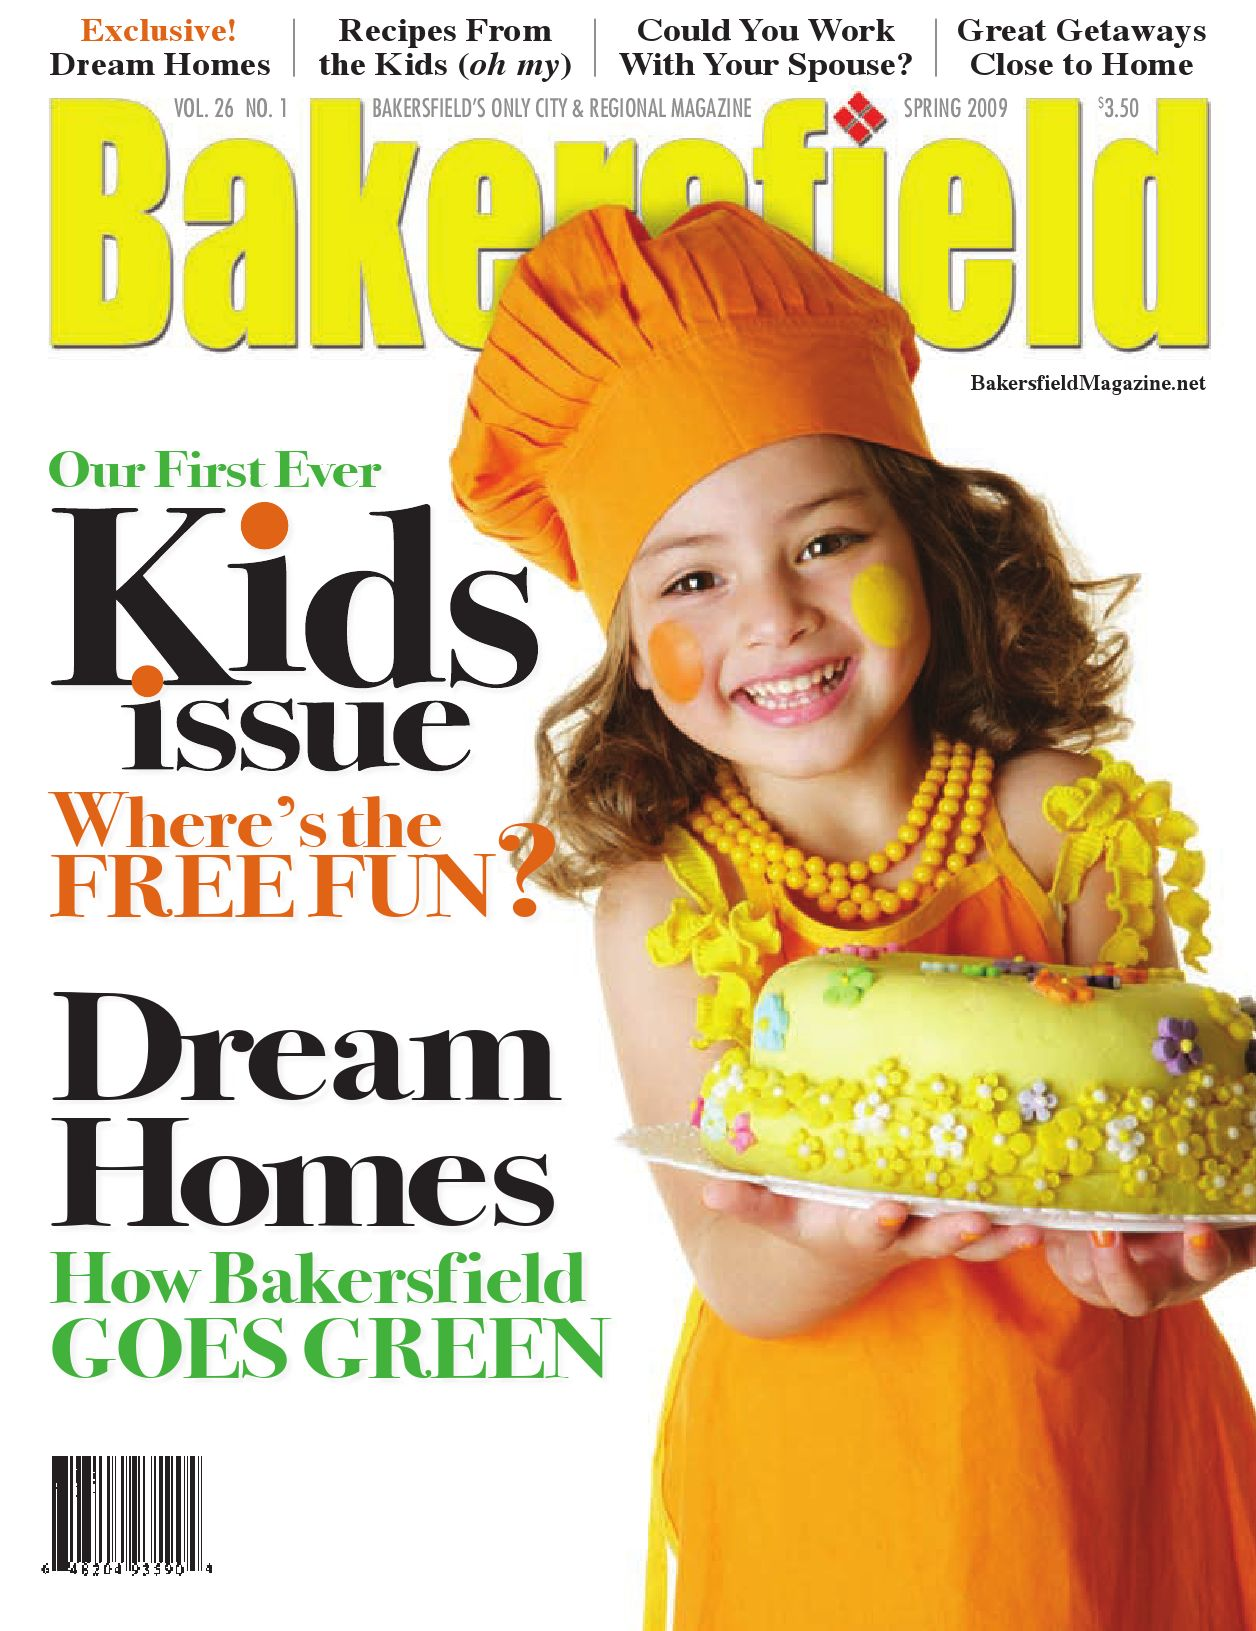 Bakersfield Magazine 26 1 Dream Homes By Bakersfield